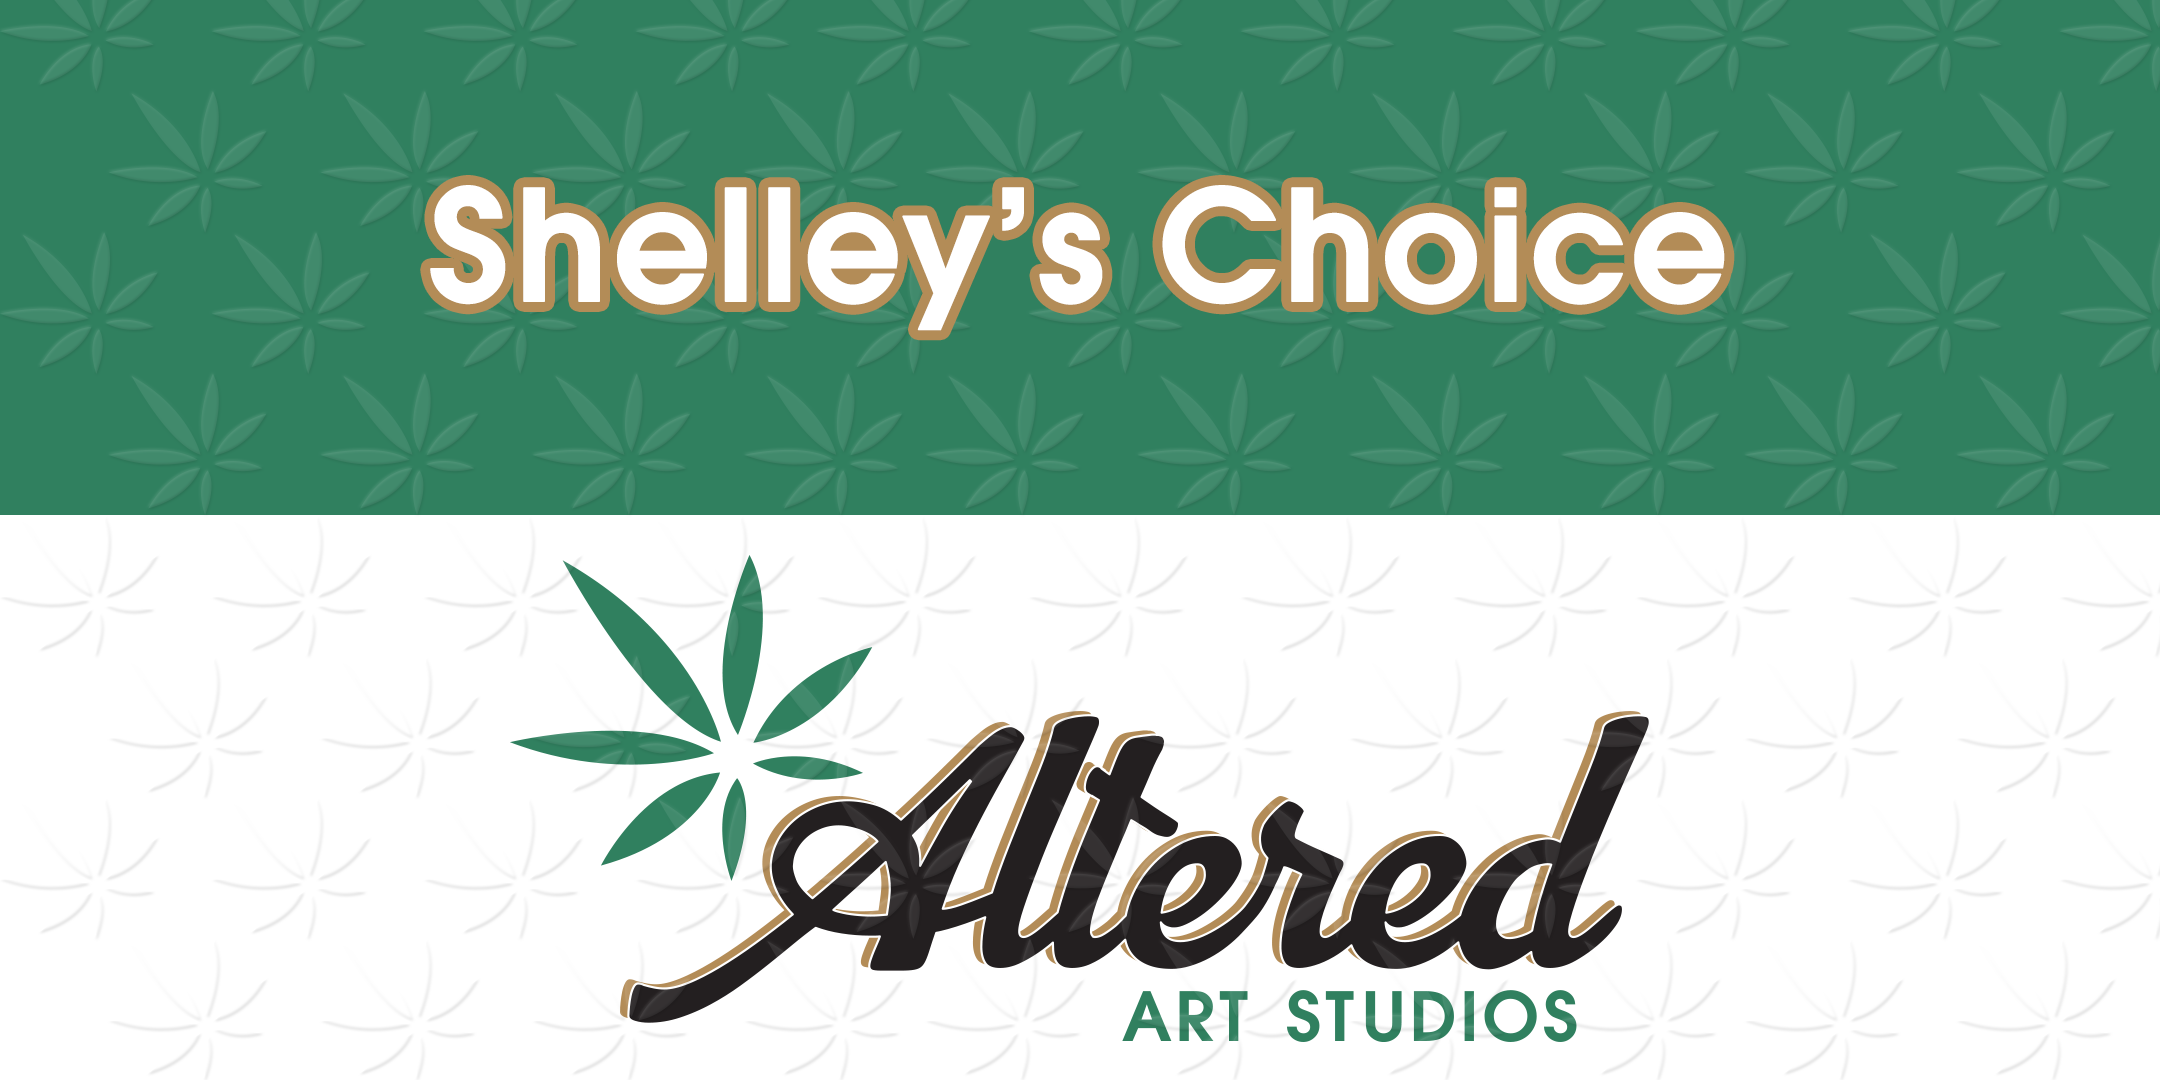 Shelleys Choice